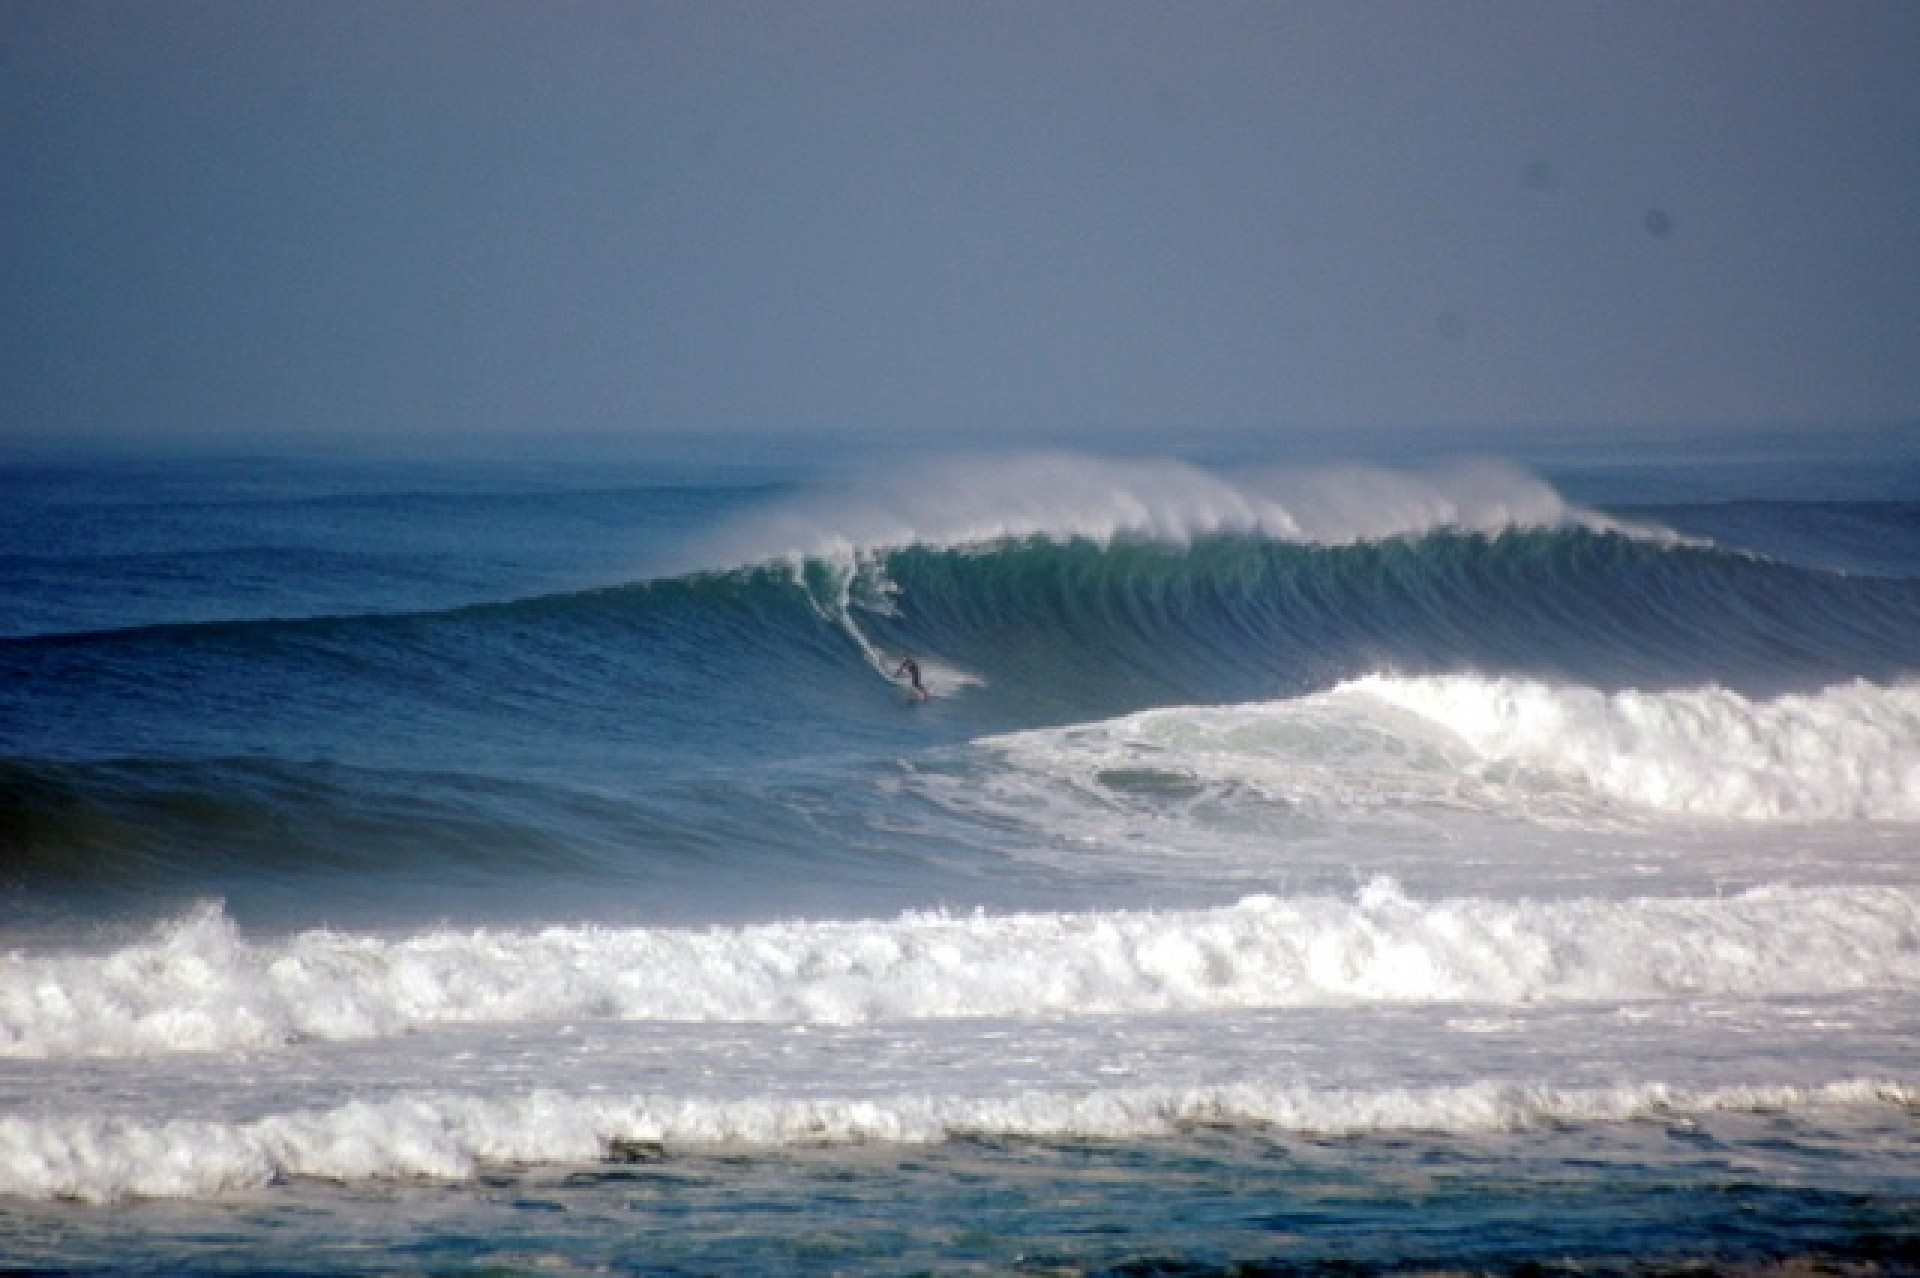 h2o holidays hossegor's photo of Hossegor (La Nord)